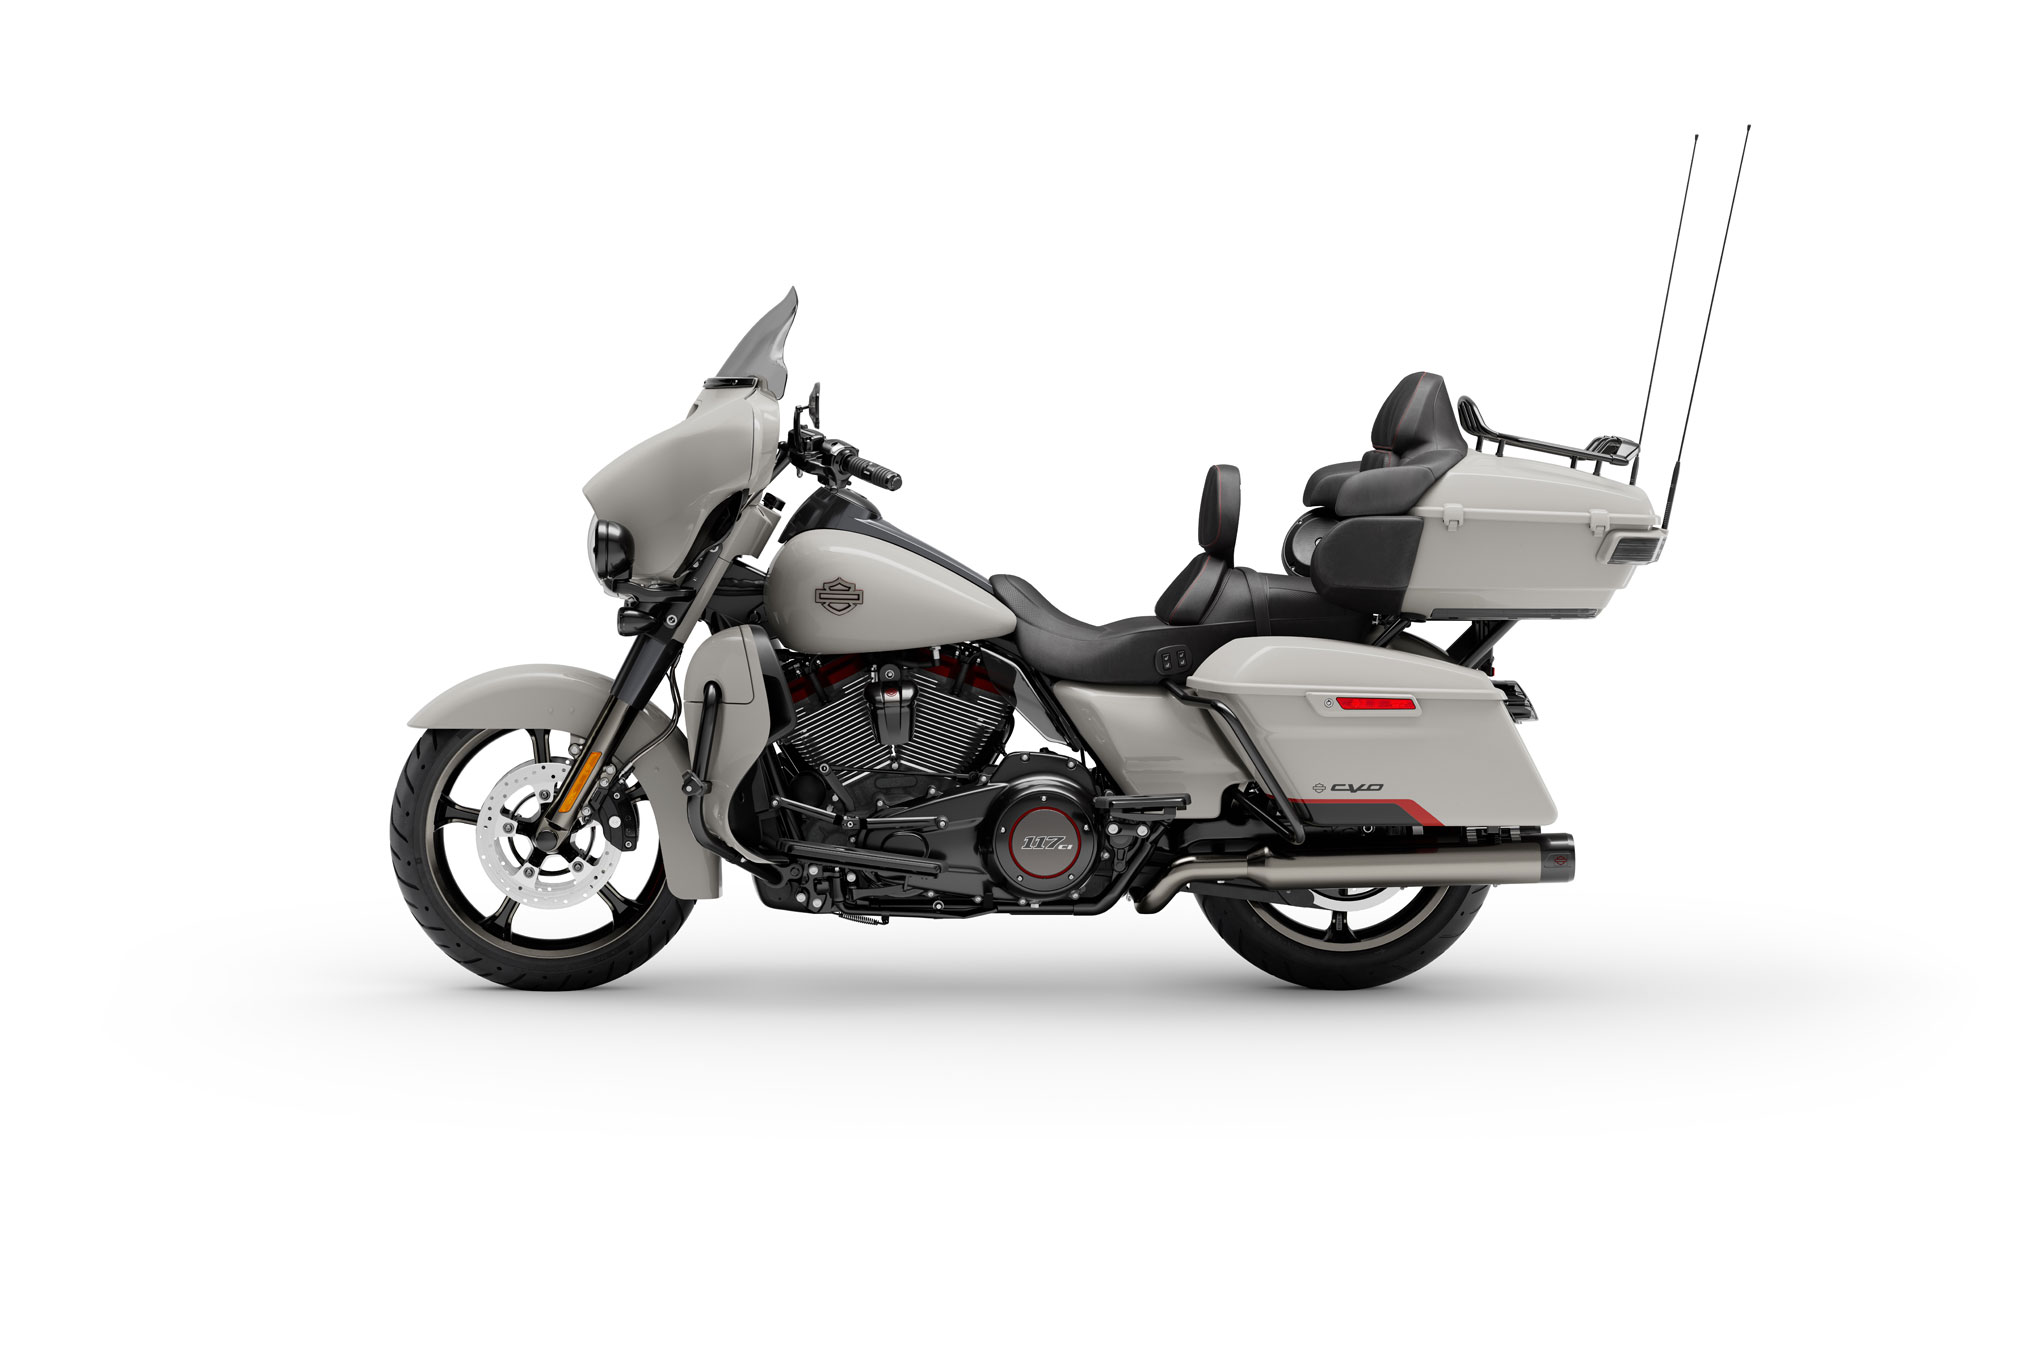 2020 Harley-Davidson CVO Limited Guide • Total Motorcycle